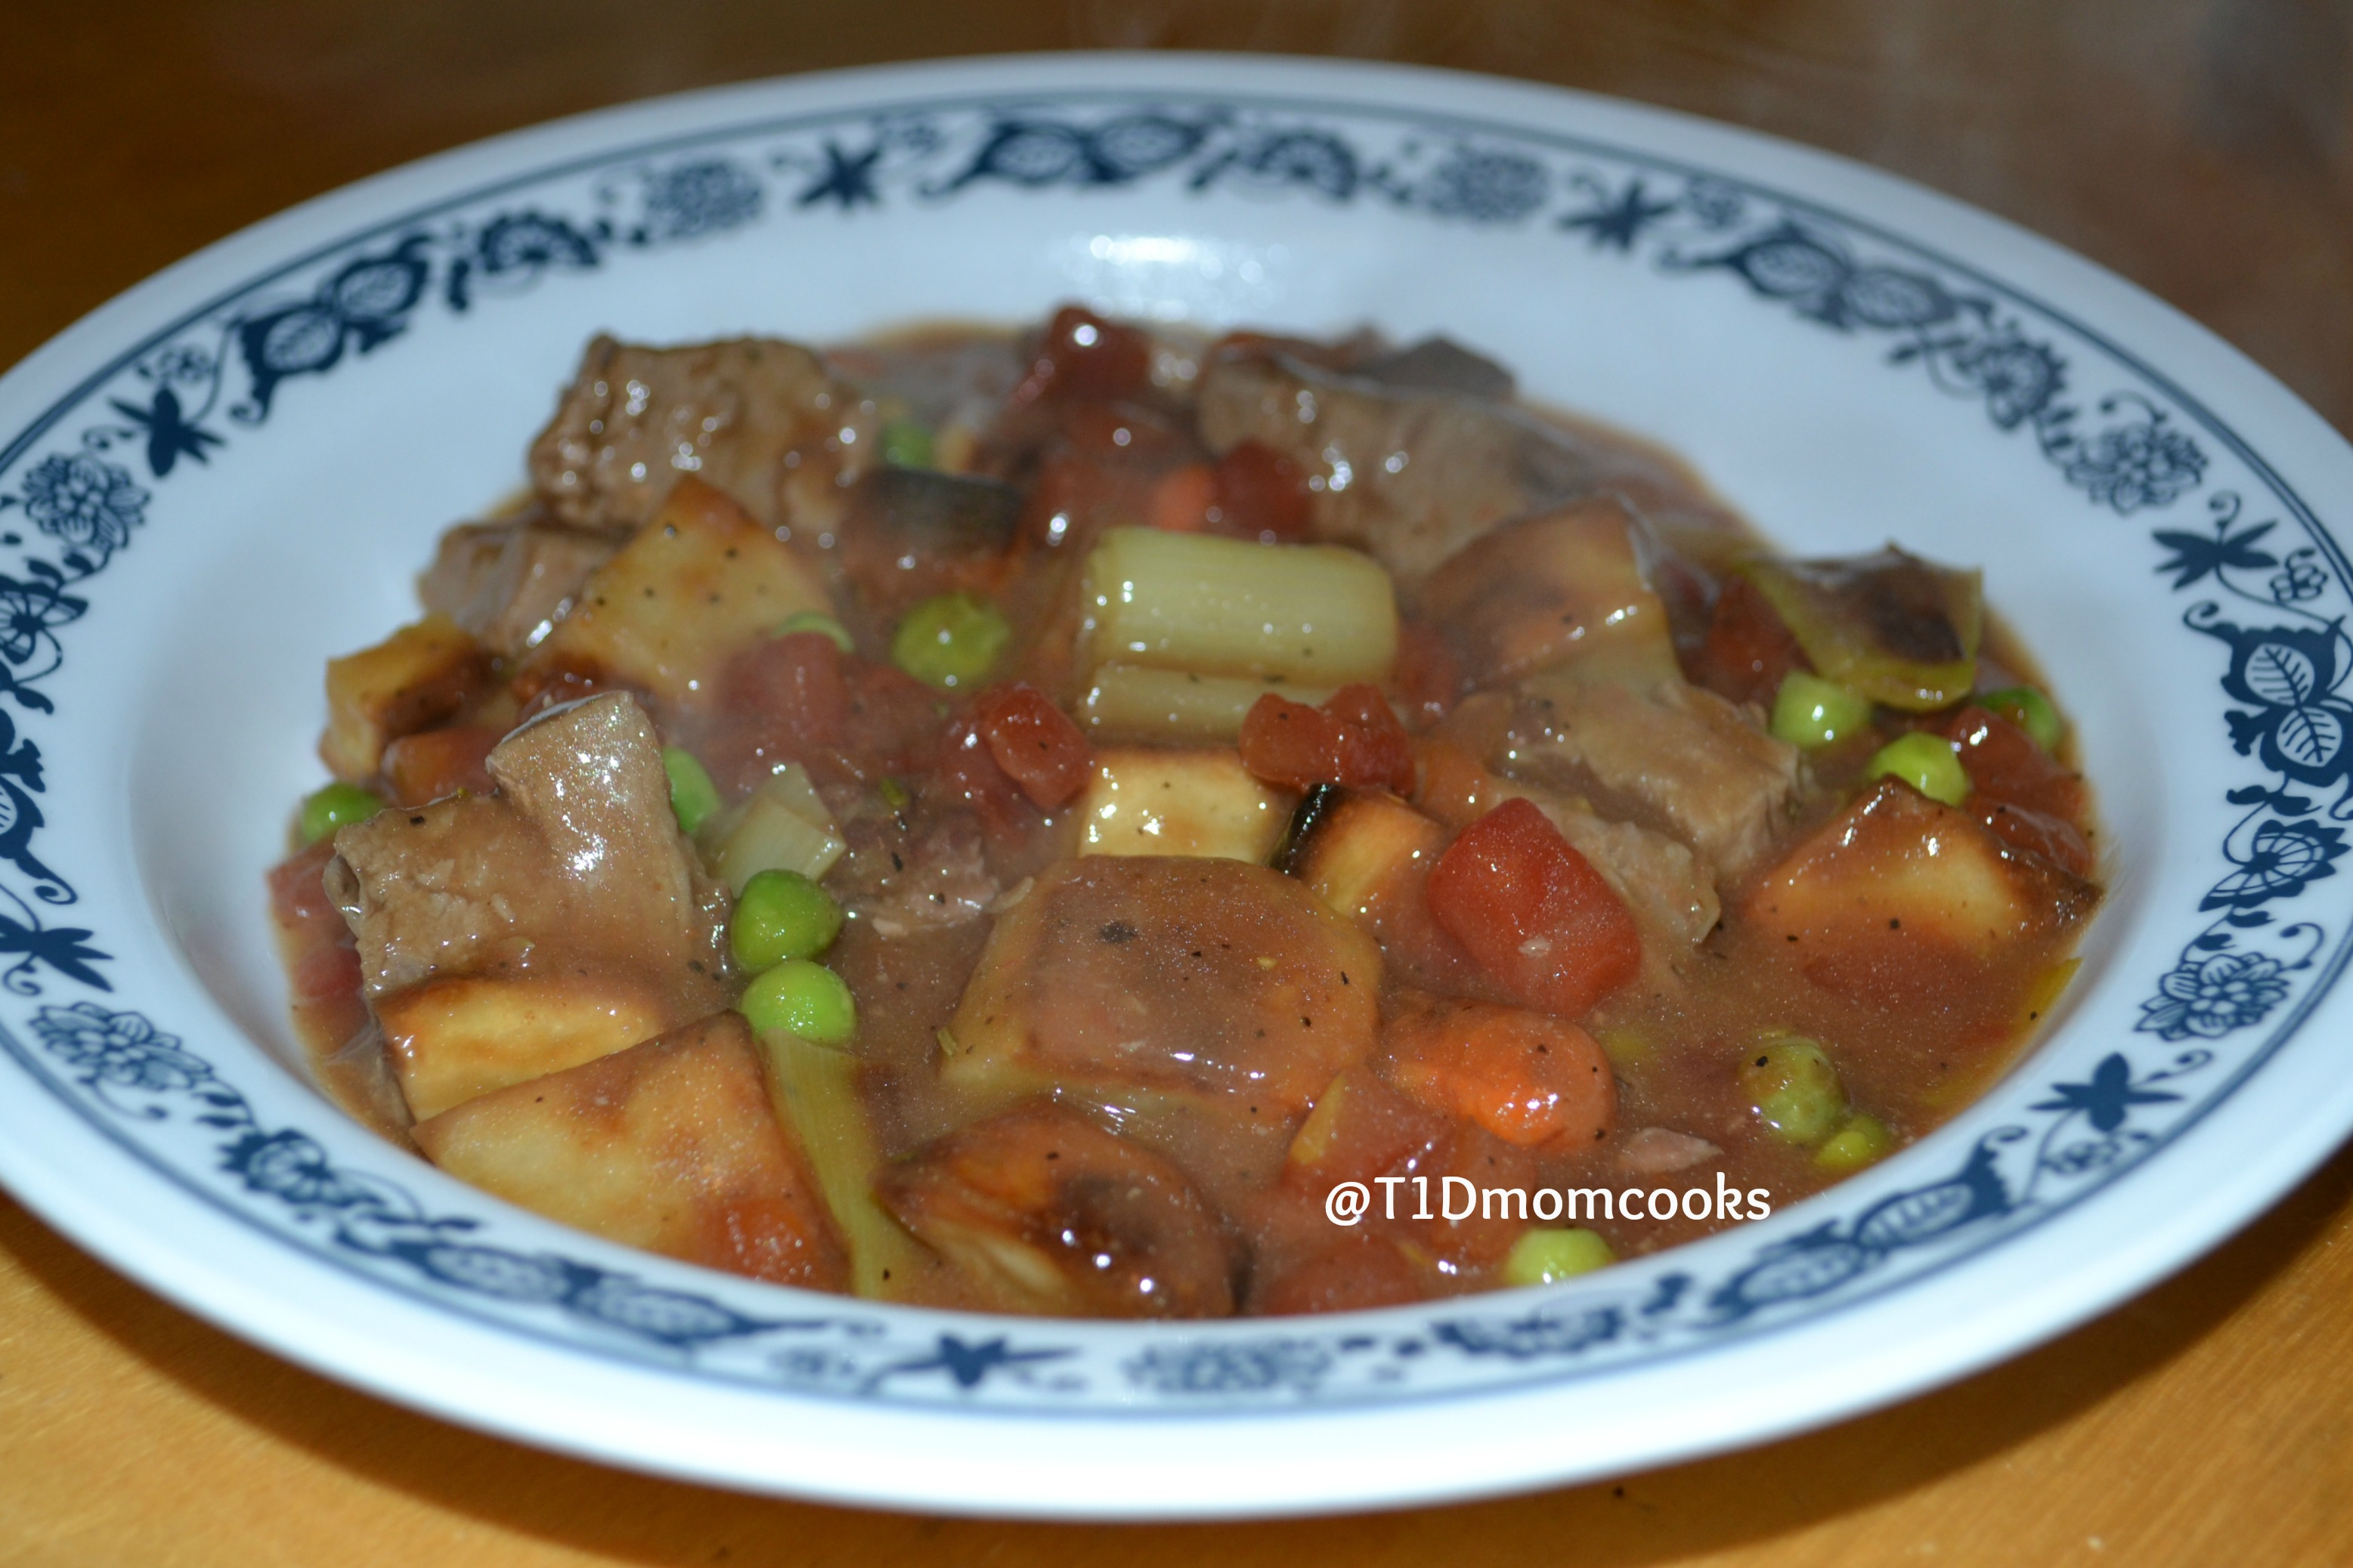 Lamb Stew with Roasted Root Vegetables (Barb Szyszkiewicz, cookandcount.wordpress.com)